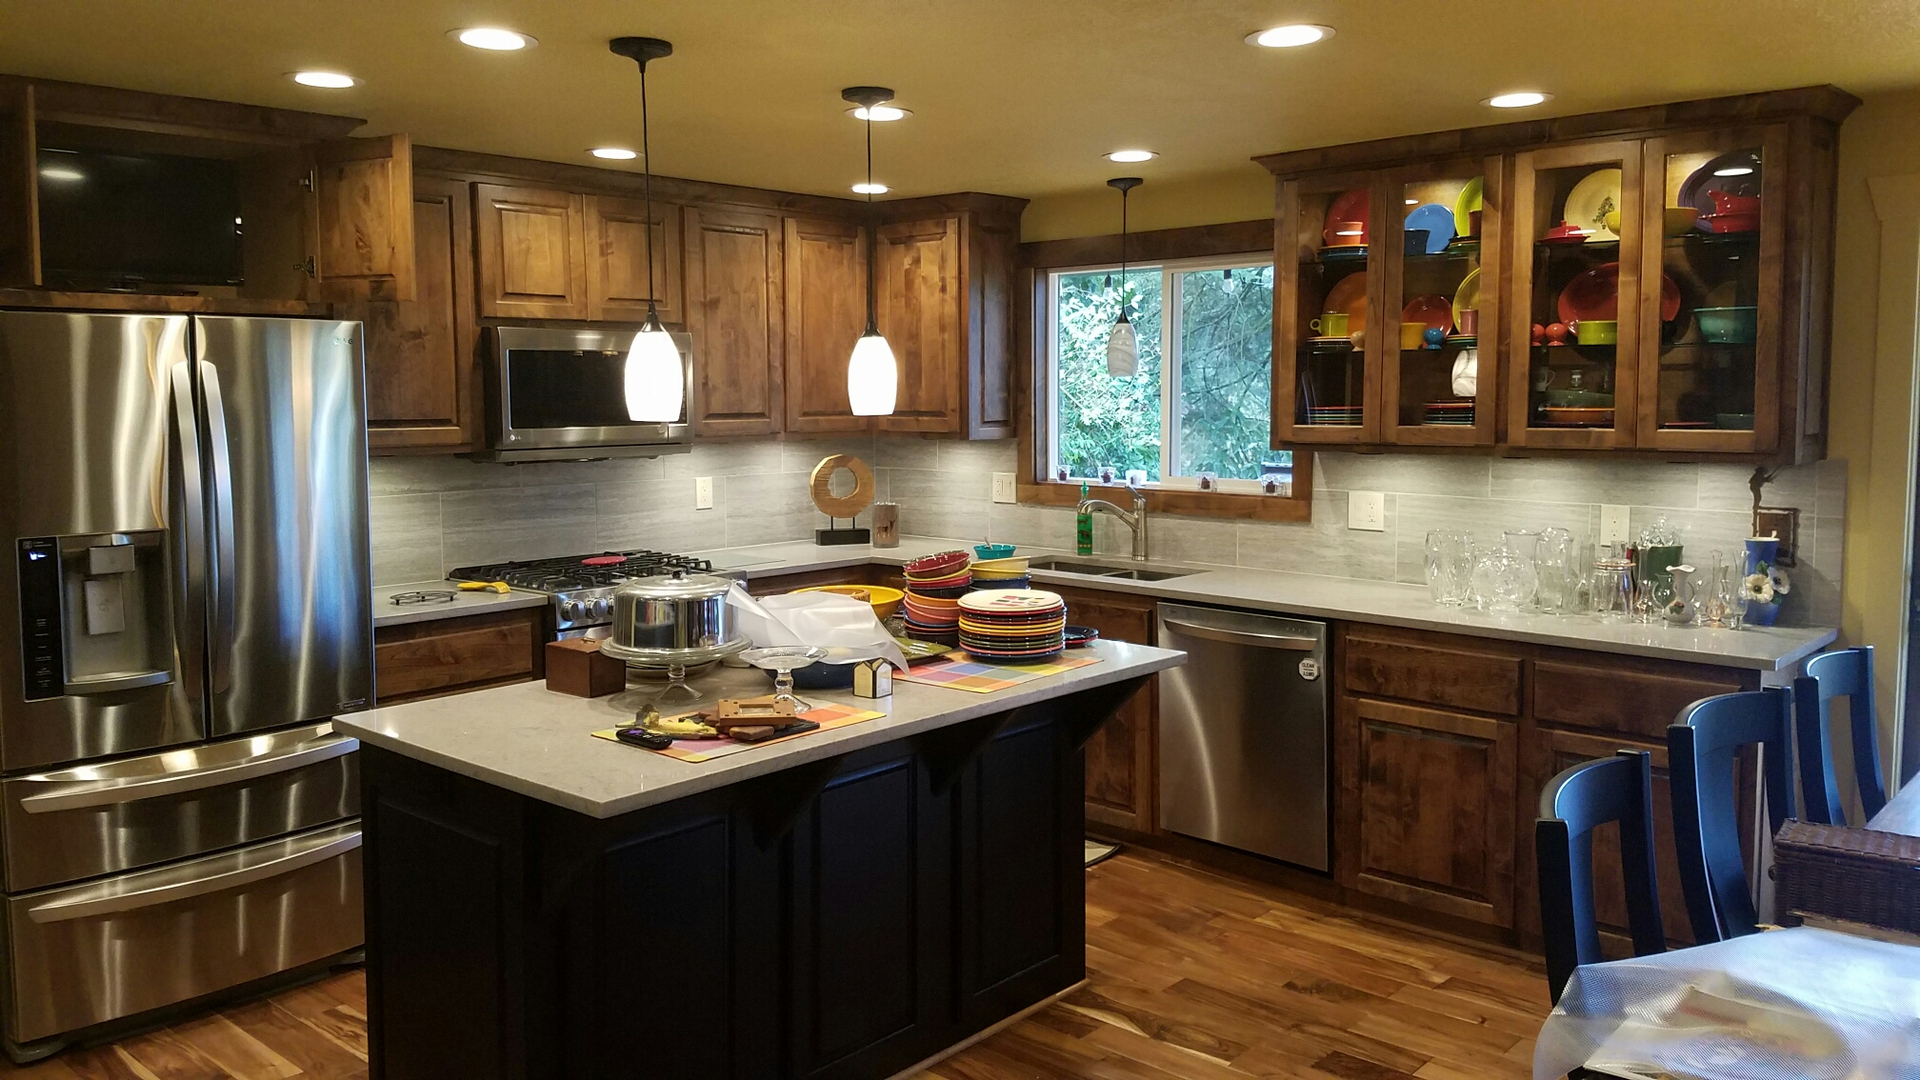 Priest Cabinets Custom Kitchen Cabinets Custom Designed Cabinets High Quality And Affordable